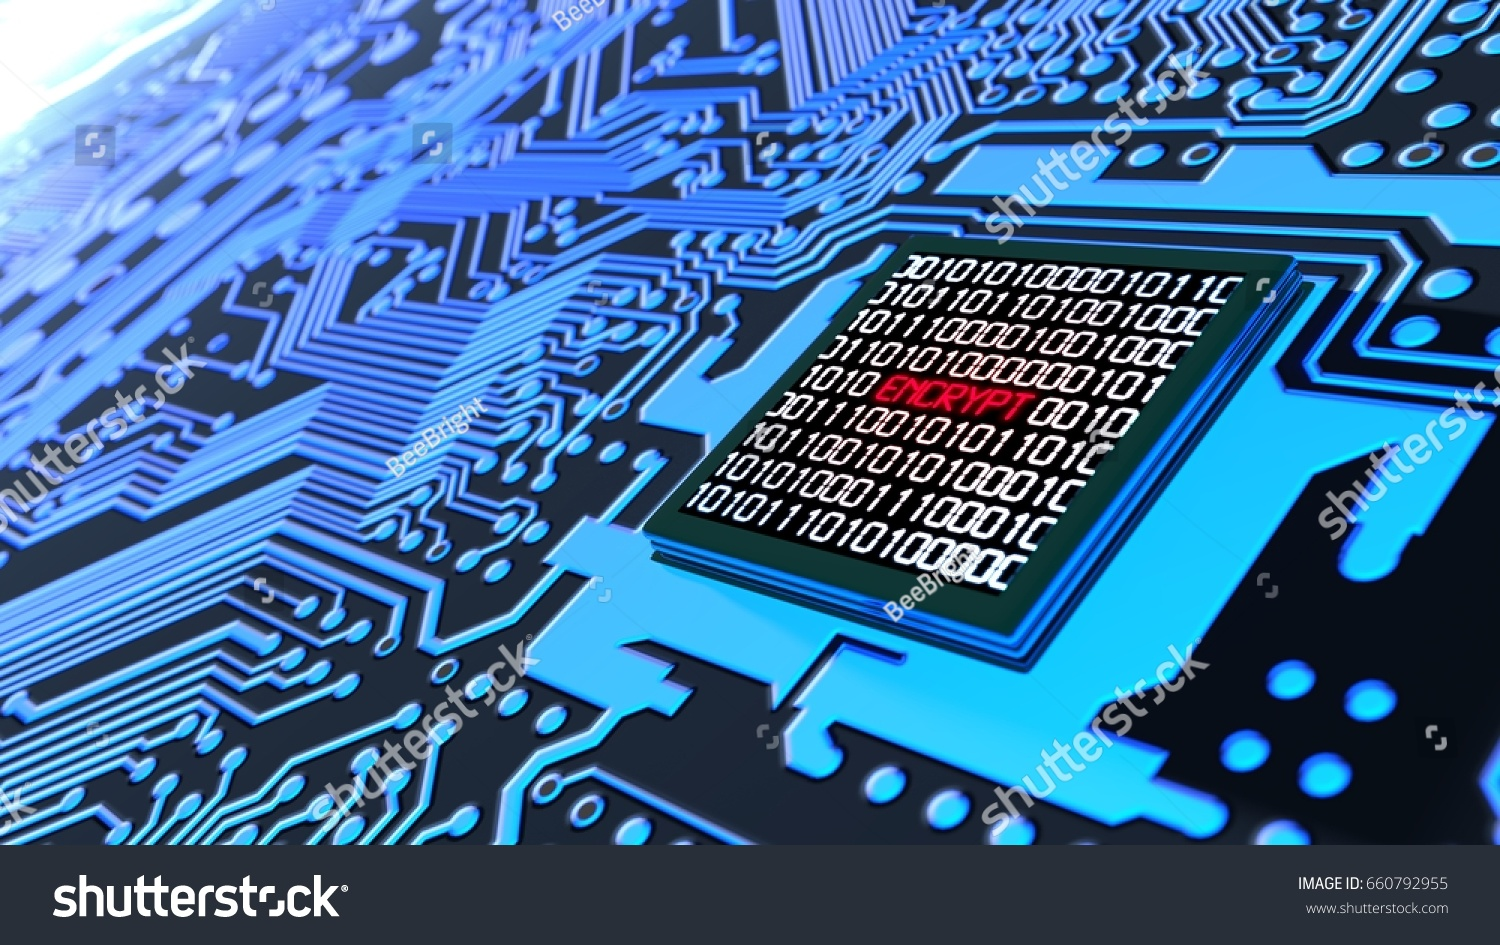 The Word Circuit Schematicscom Dog Repellent Ultrasonic Stock Photo Encrypted Data Cybersecurity Concept Board With Binary Datastreams And Encrypt